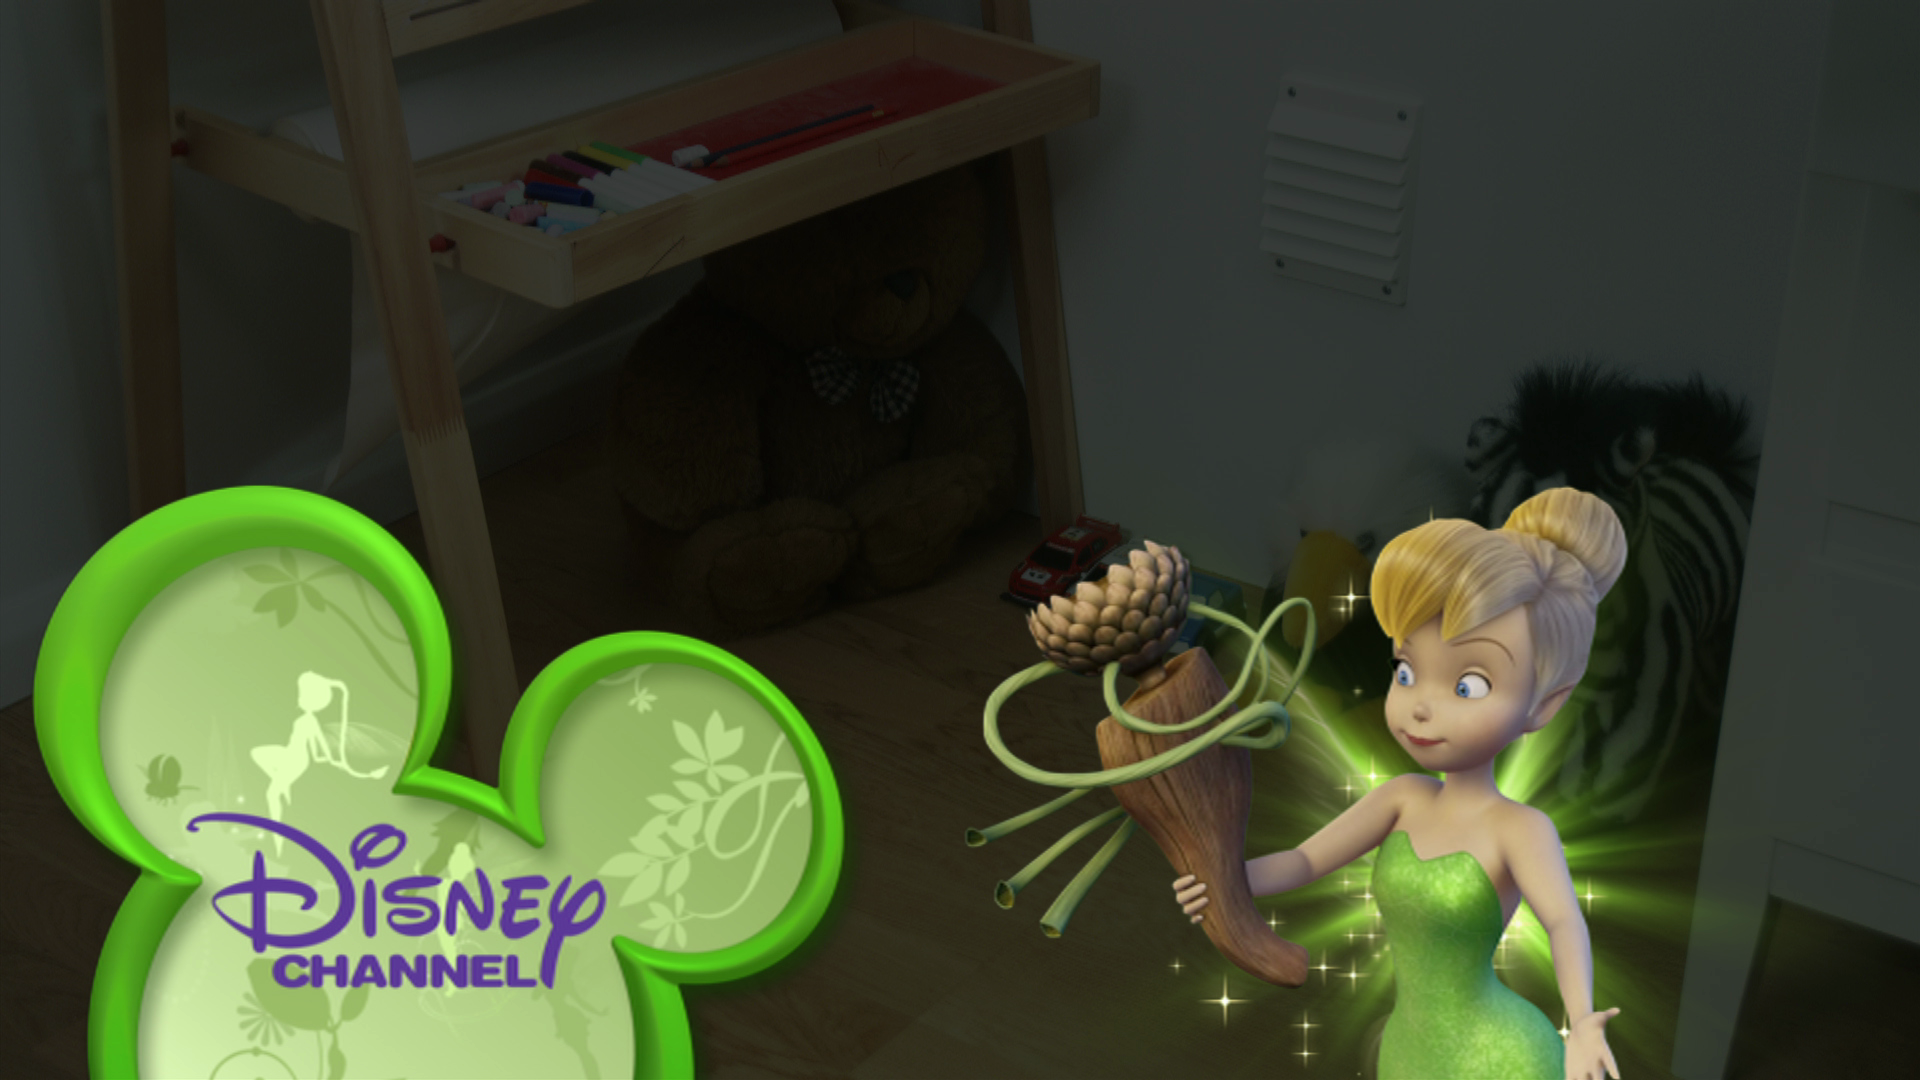 Disney – Fairies Tinkerbell